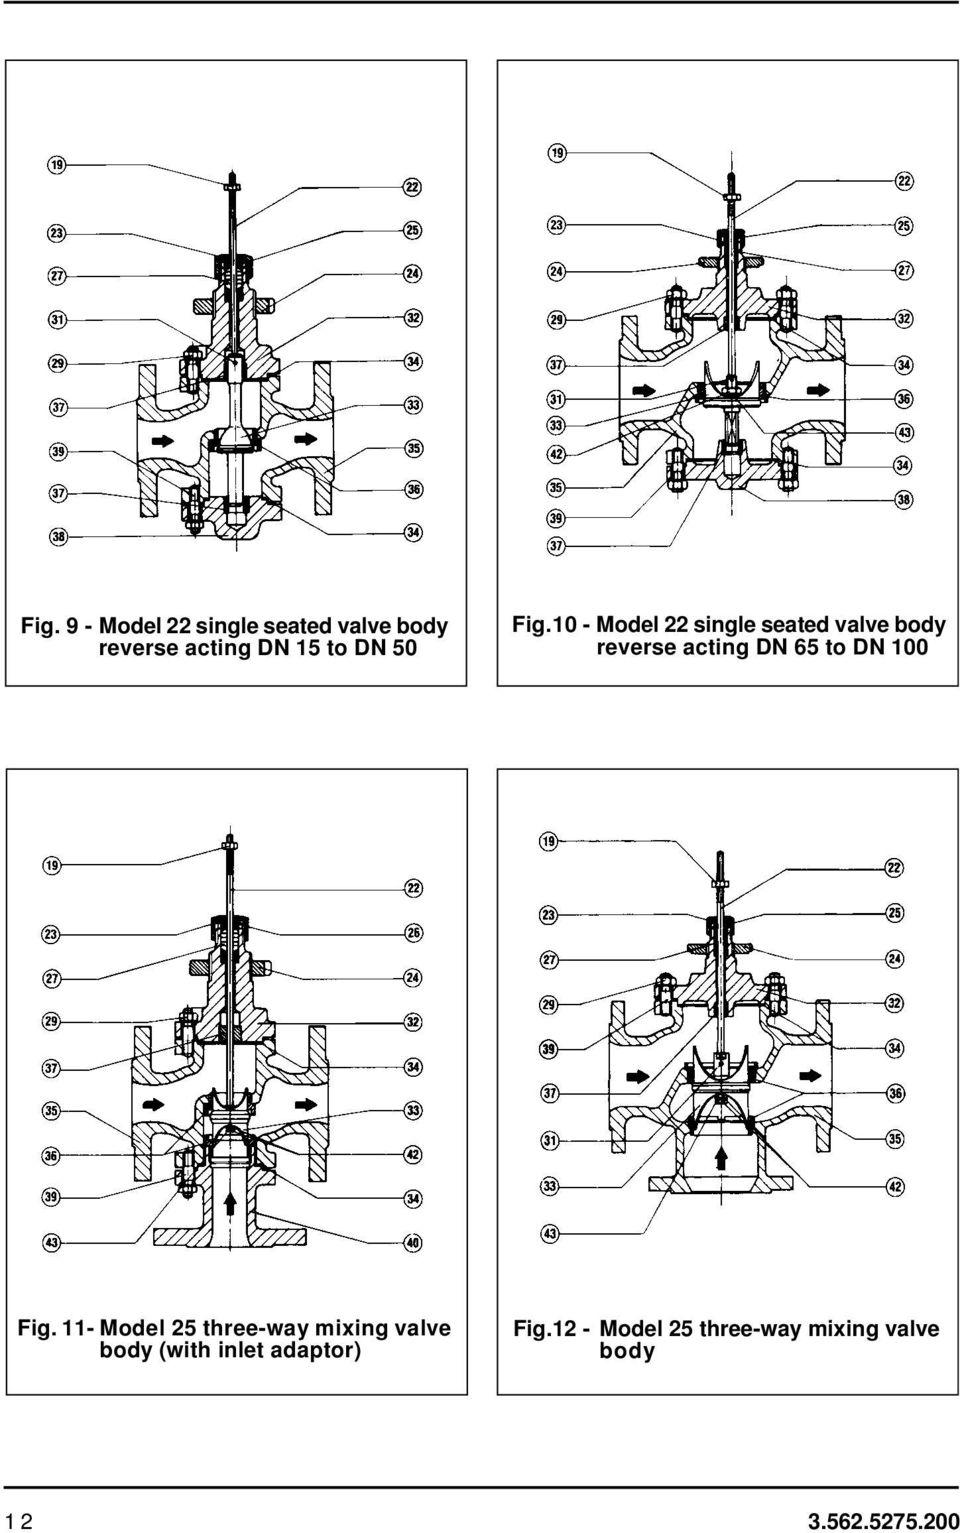 10 - Model 22 single seated valve body reverse acting DN 65 to DN 100